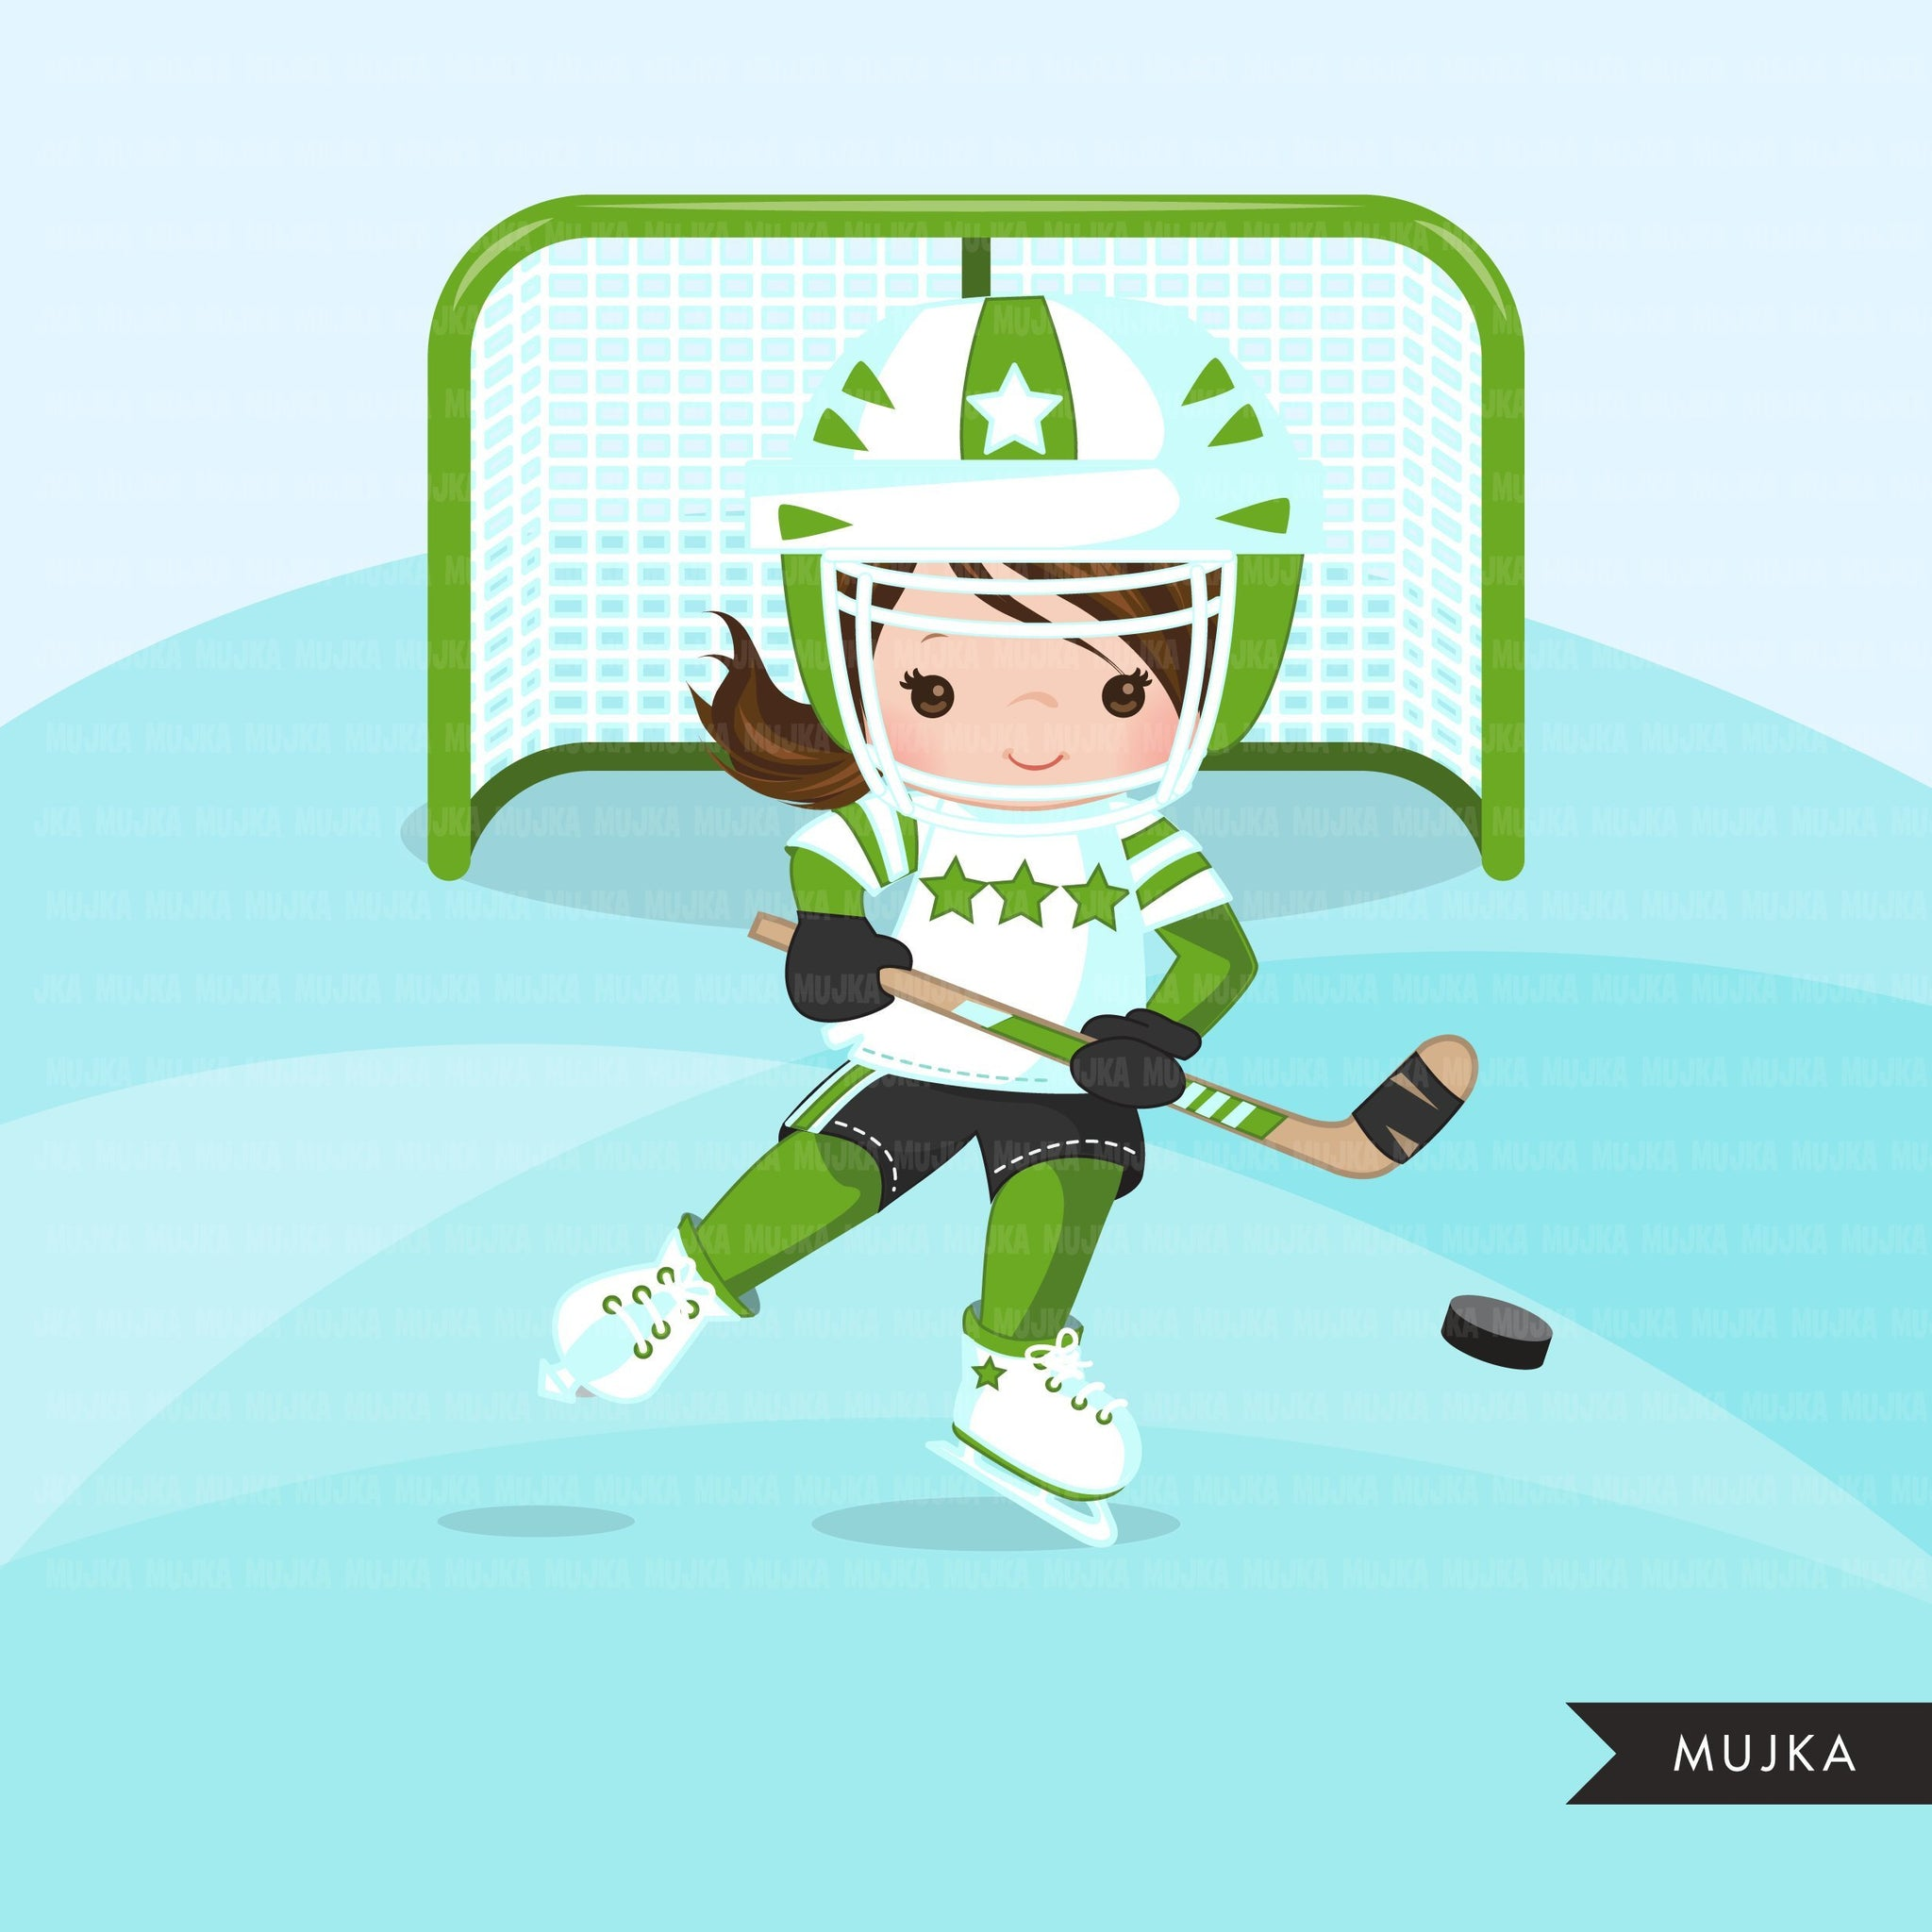 Hockey clipart, Girl in green jersey